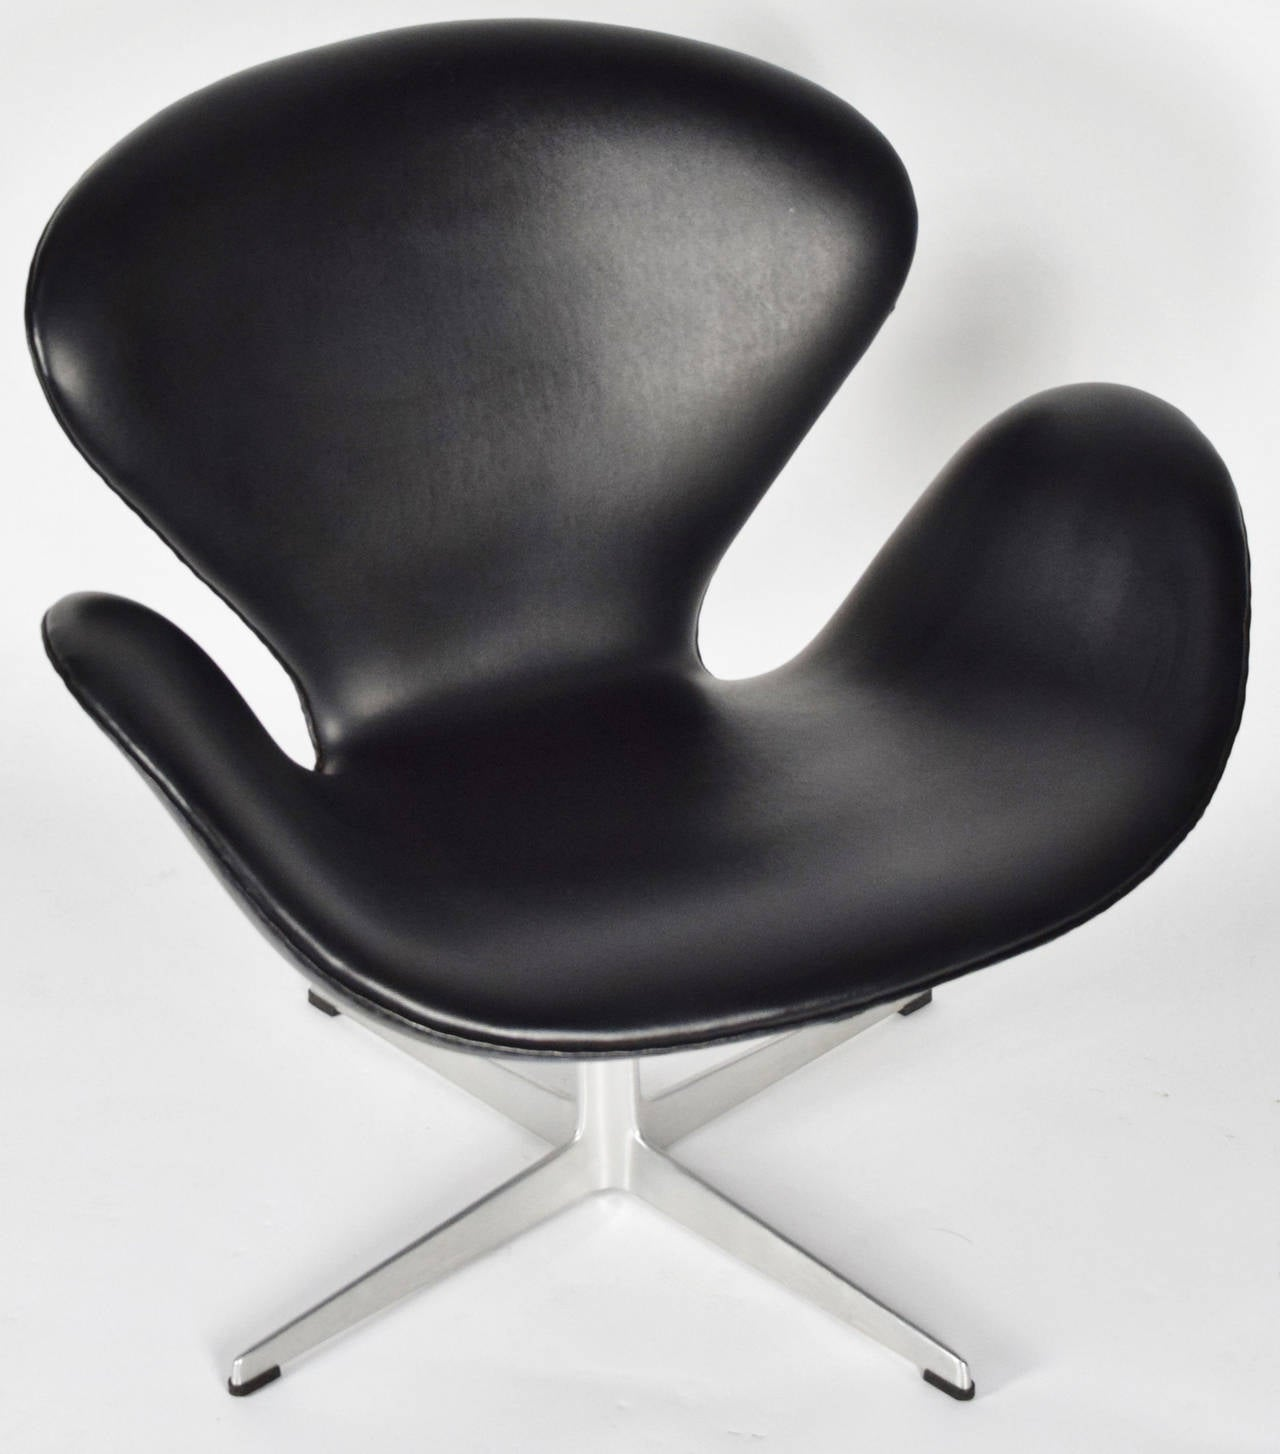 This arne jacobsen swan chair in cognac leather by fritz hansen is no - Arne Jacobsen Swan Chair In Black Vinyl By Fritz Hansen 3